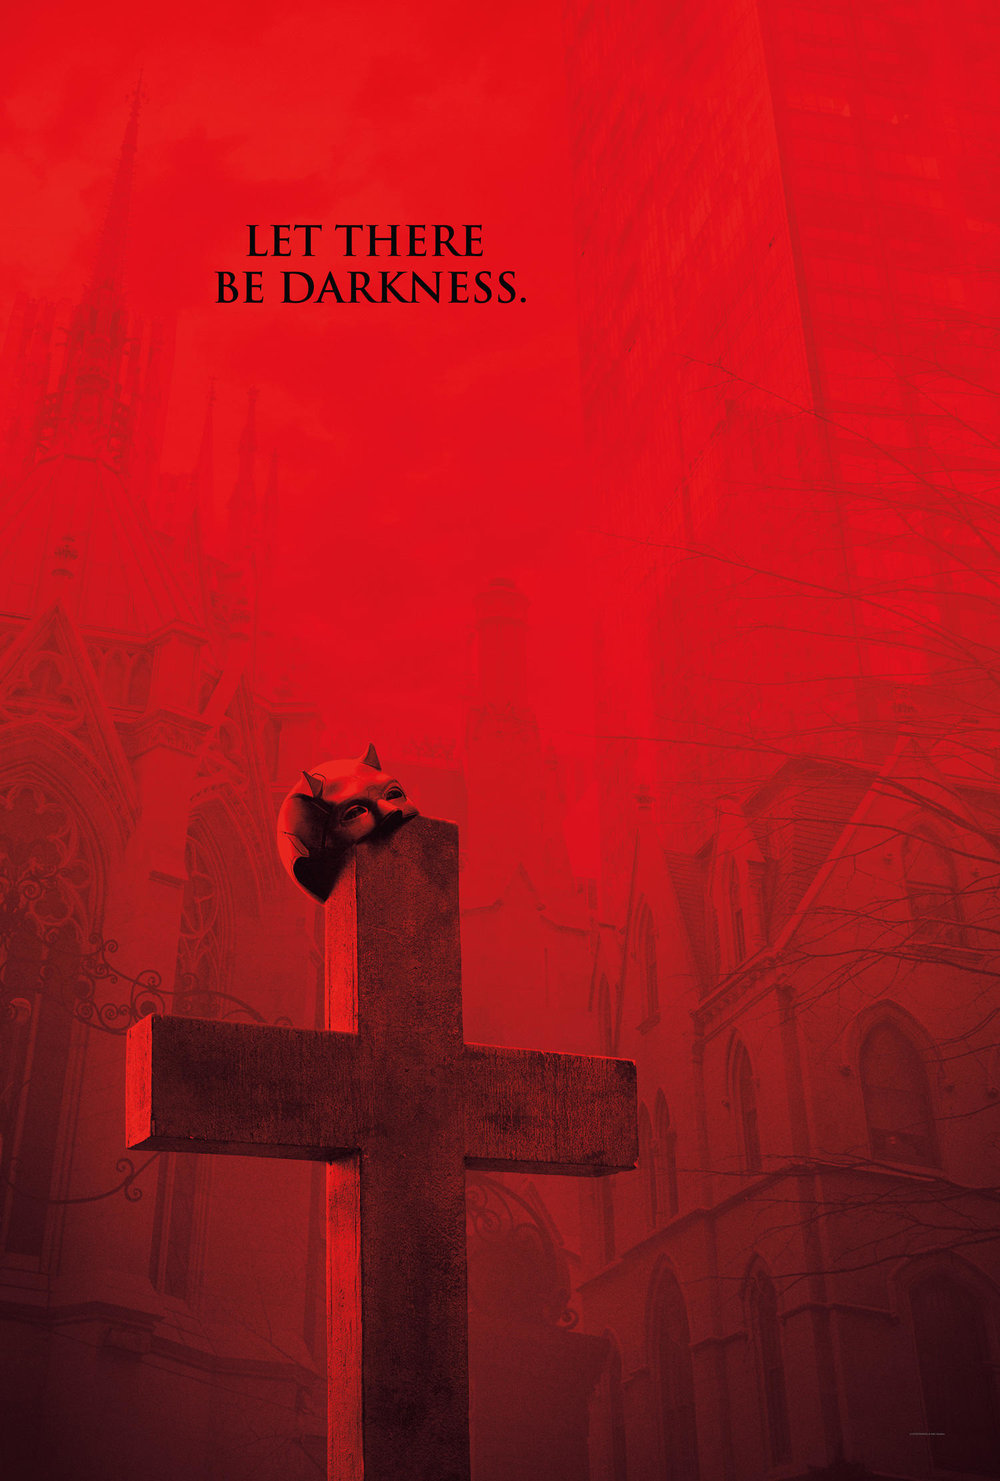 daredevil-season-3-gets-a-haunting-new-poster